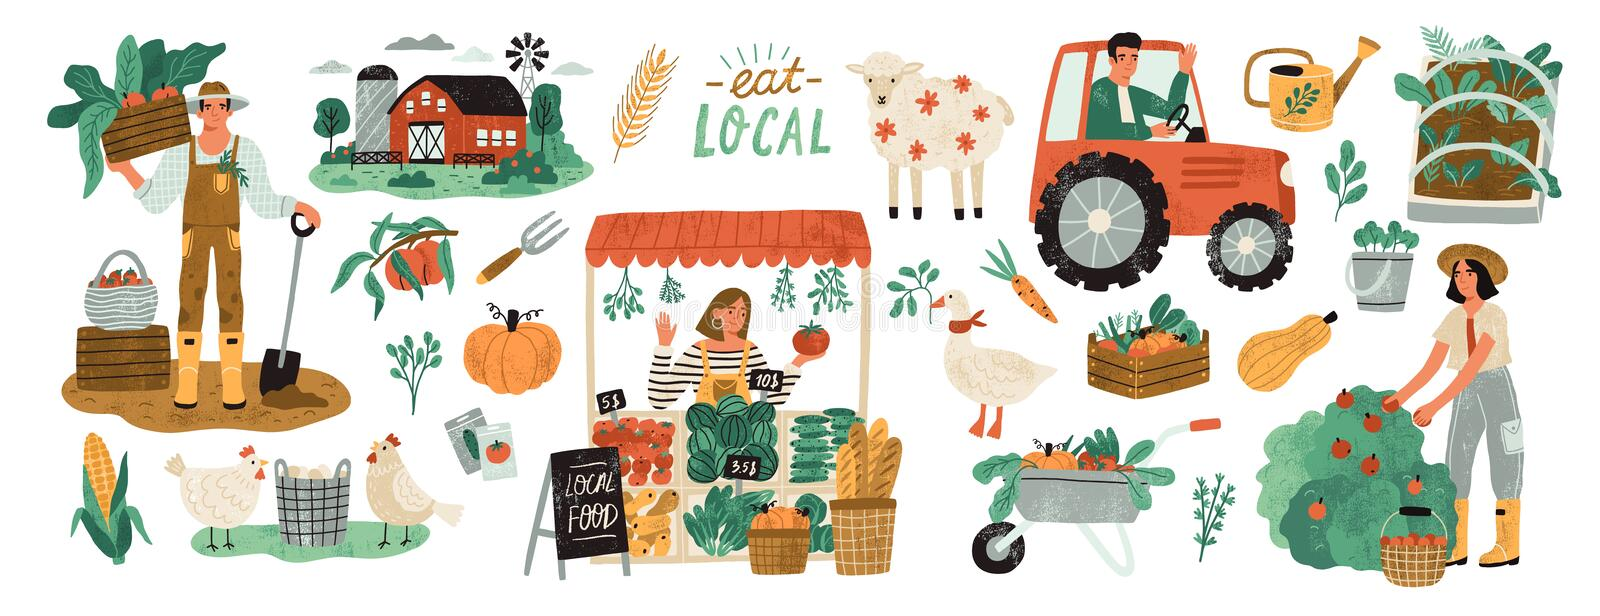 Local organic production set. Agricultural workers planting and gathering crops, working on tractor, farmer selling vector illustration